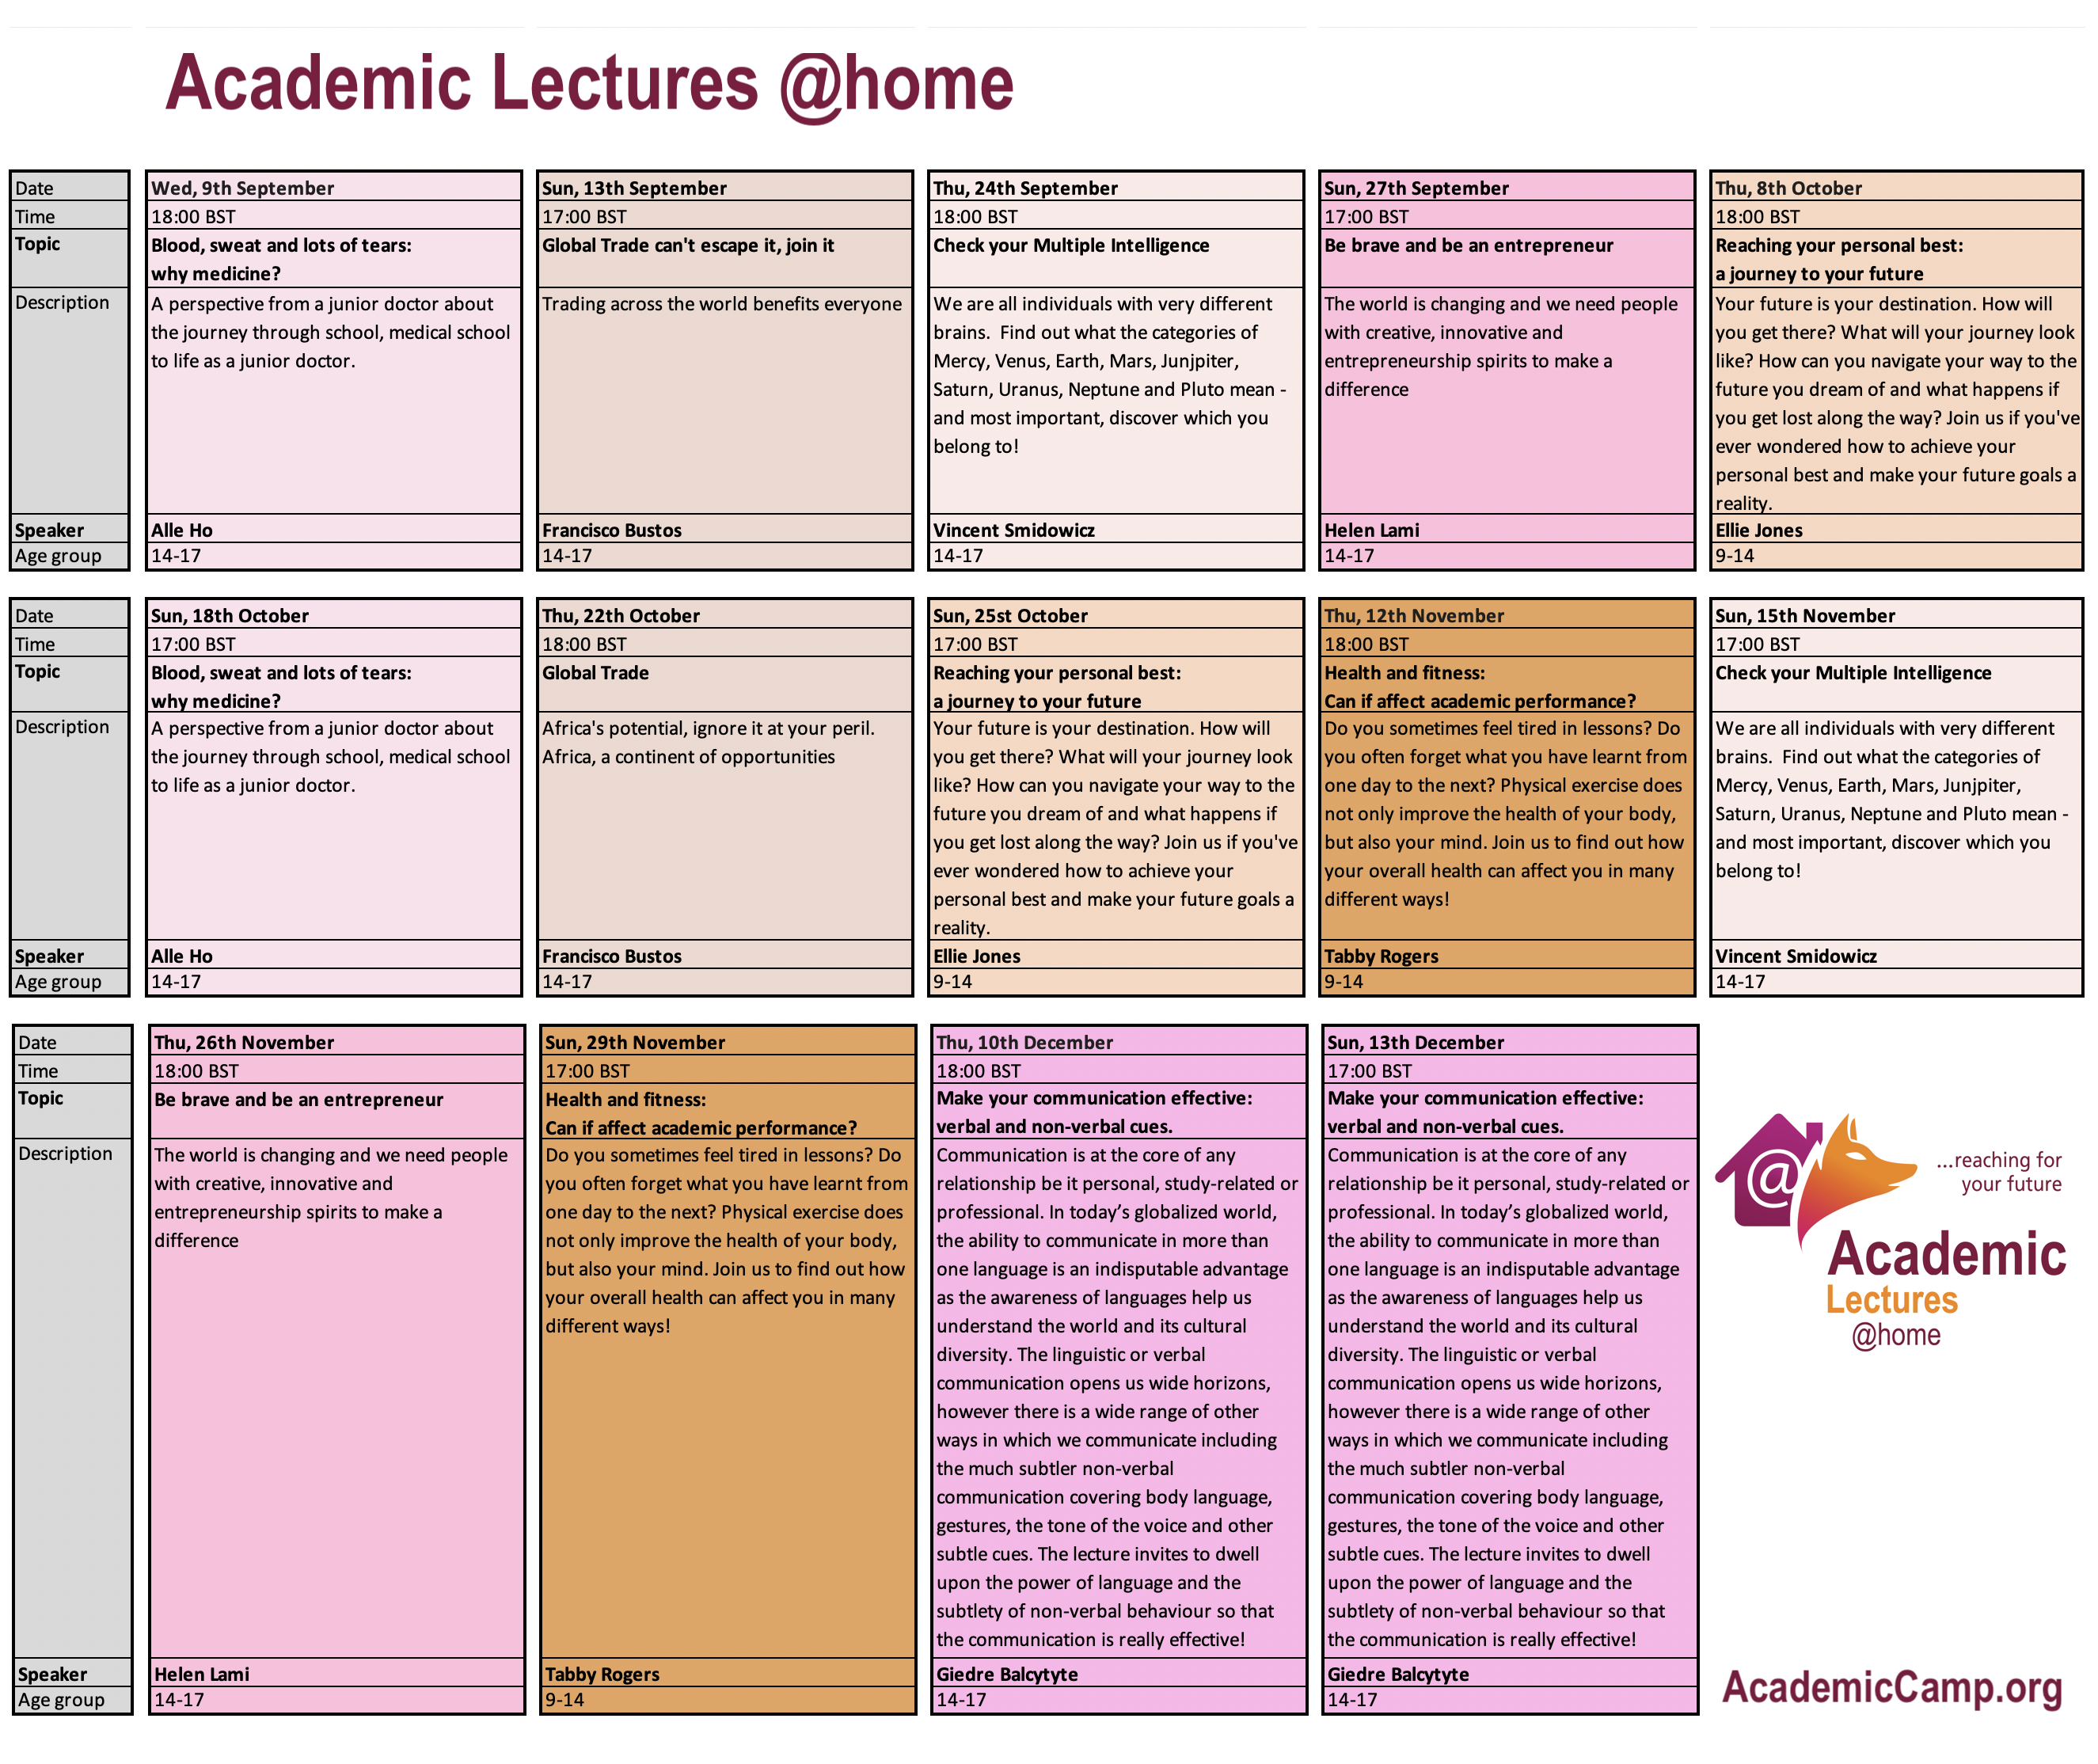 Academic Lectures @home schedule